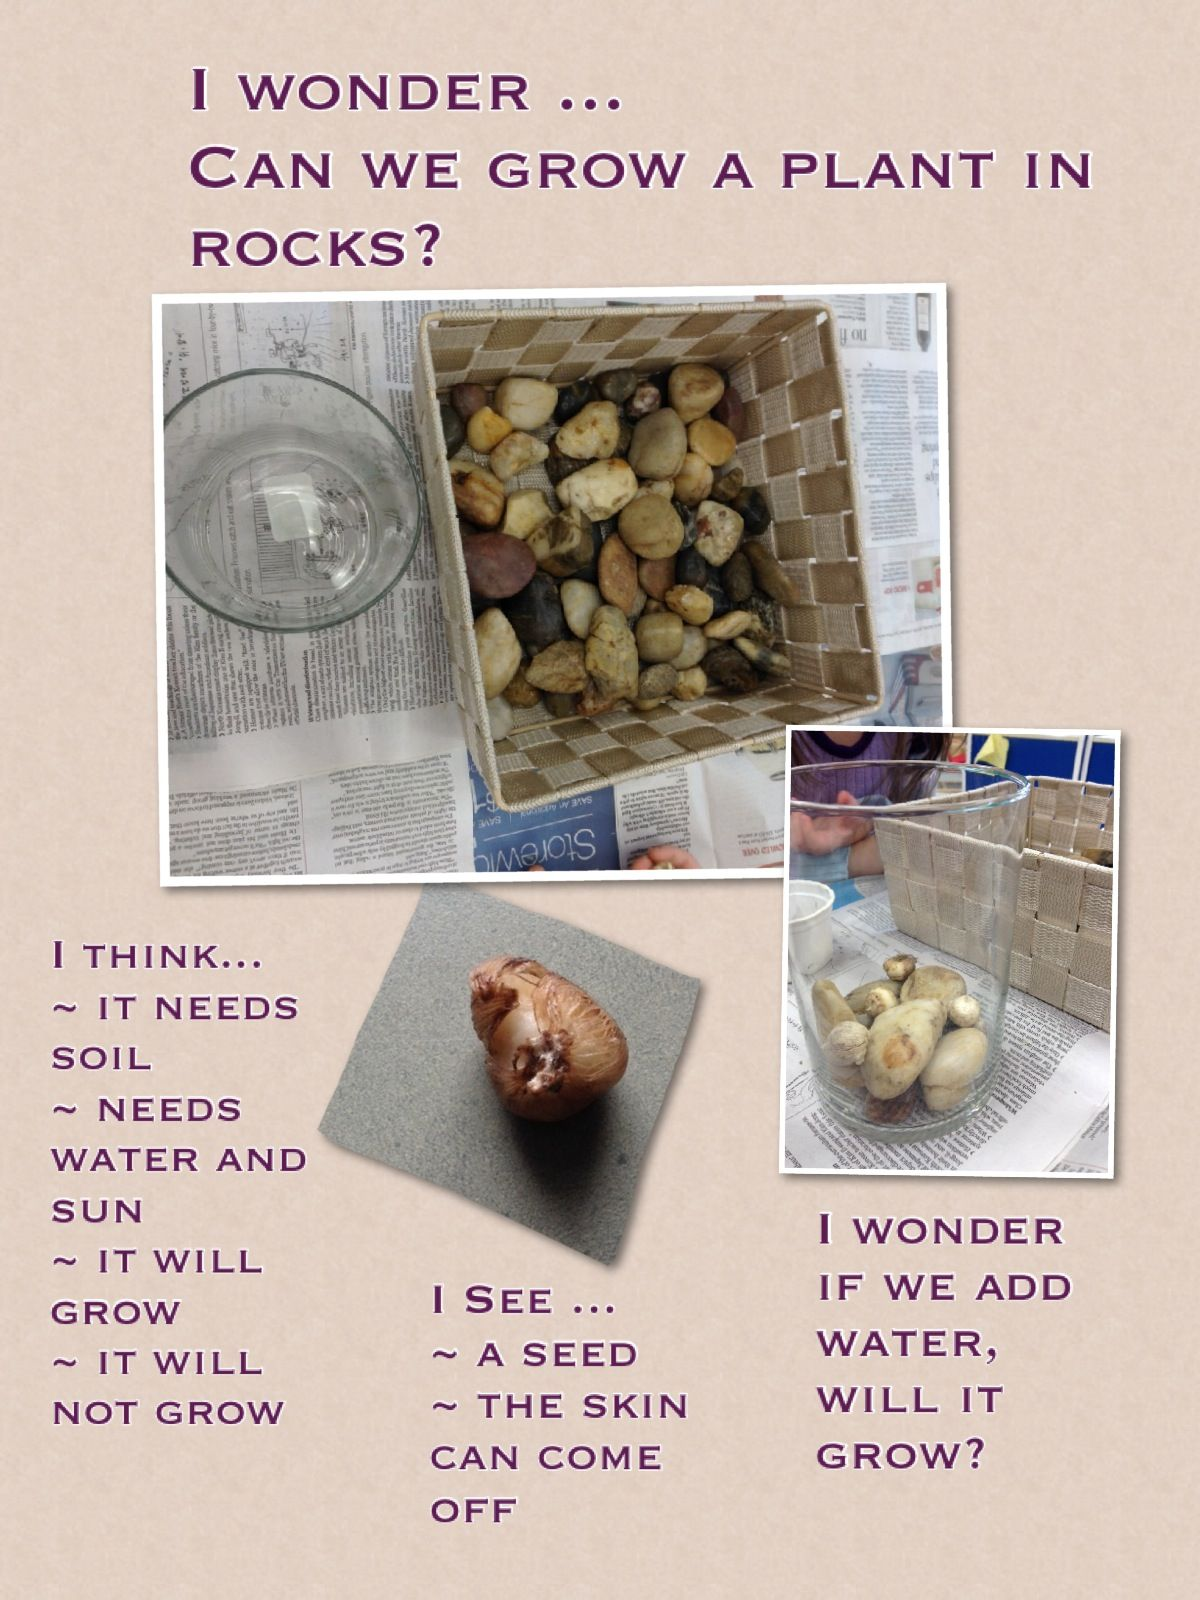 Can We Grow A Plant In Rocks